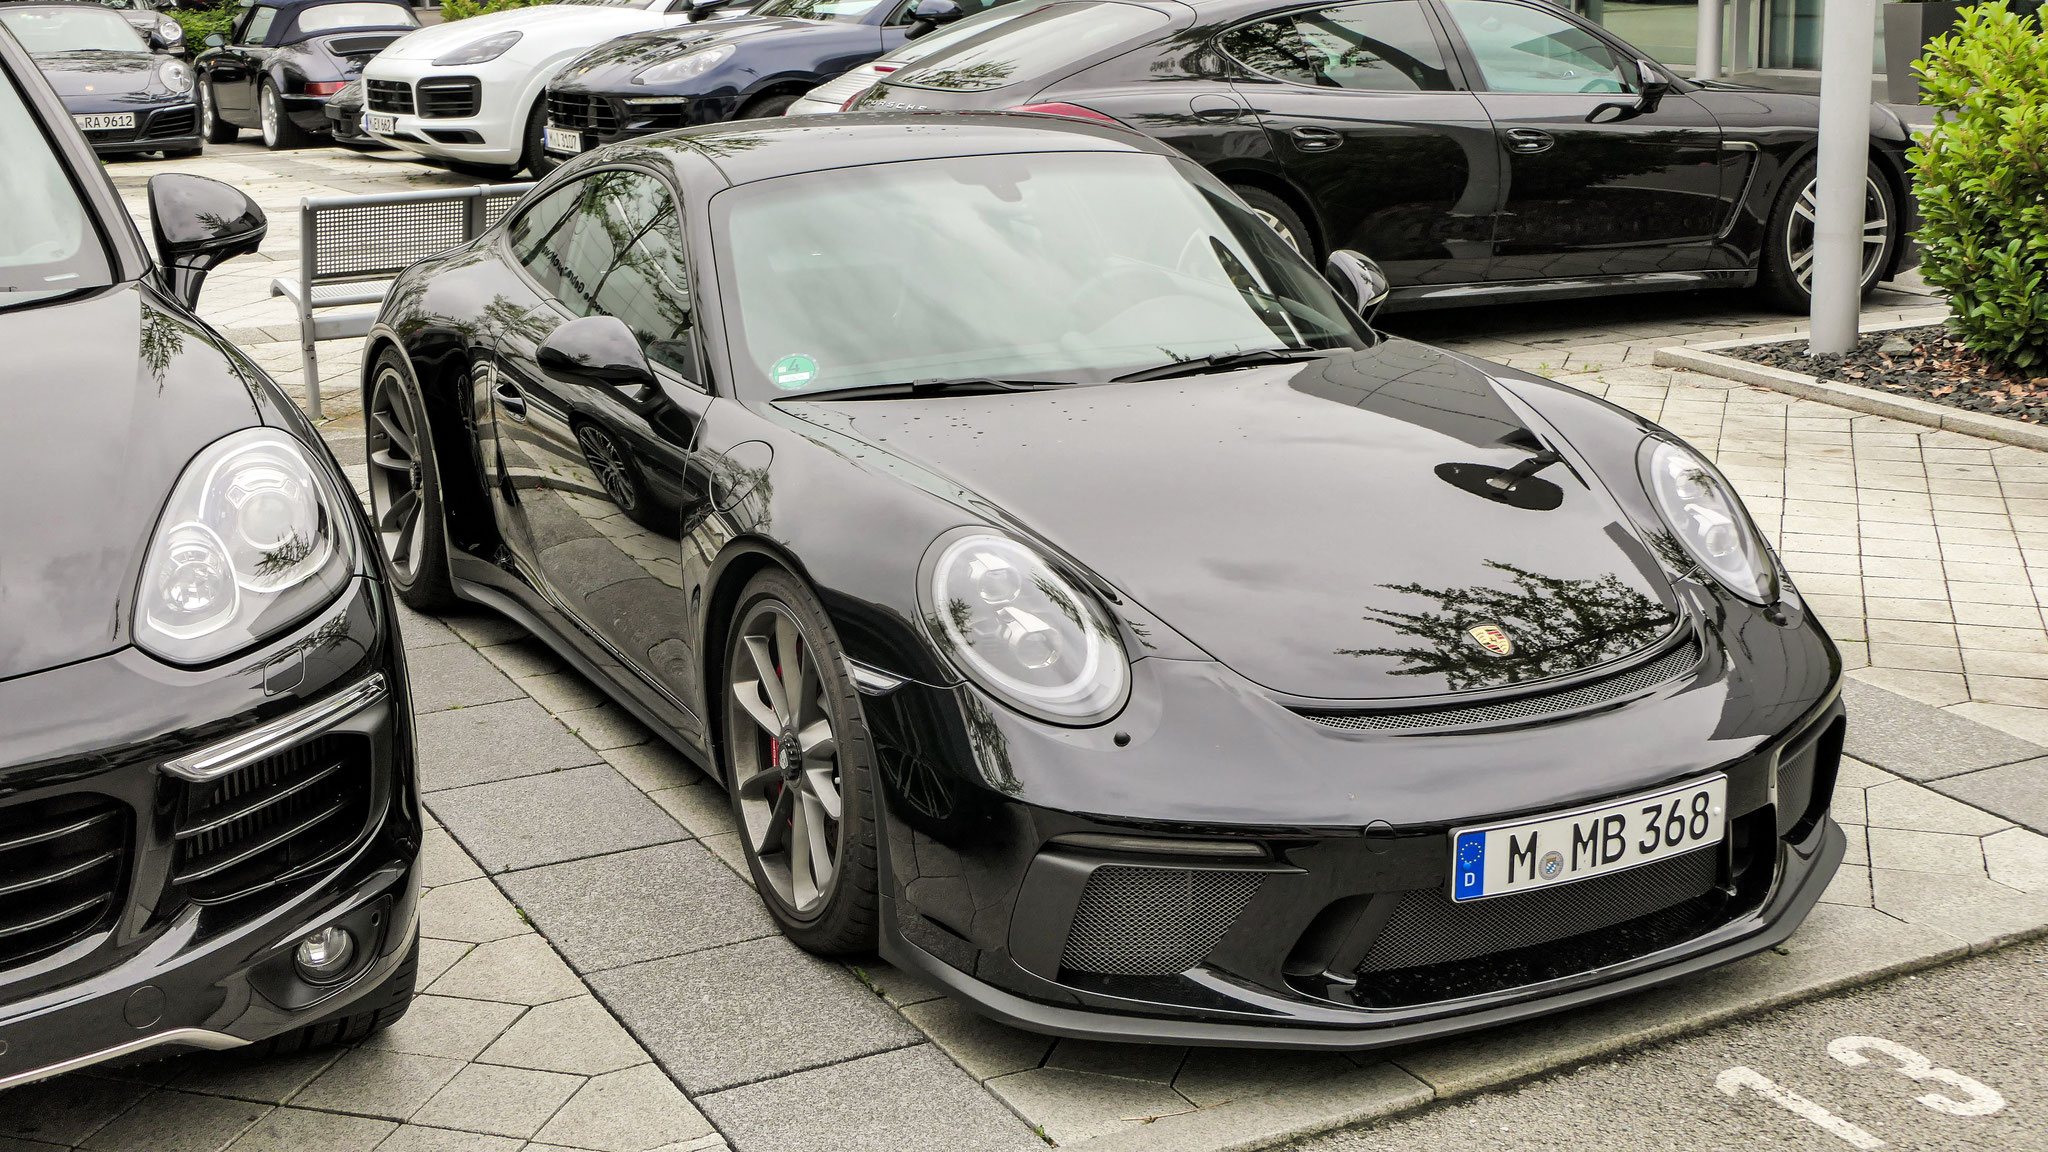 Porsche 991 GT3 Touring Package - M-MB-368